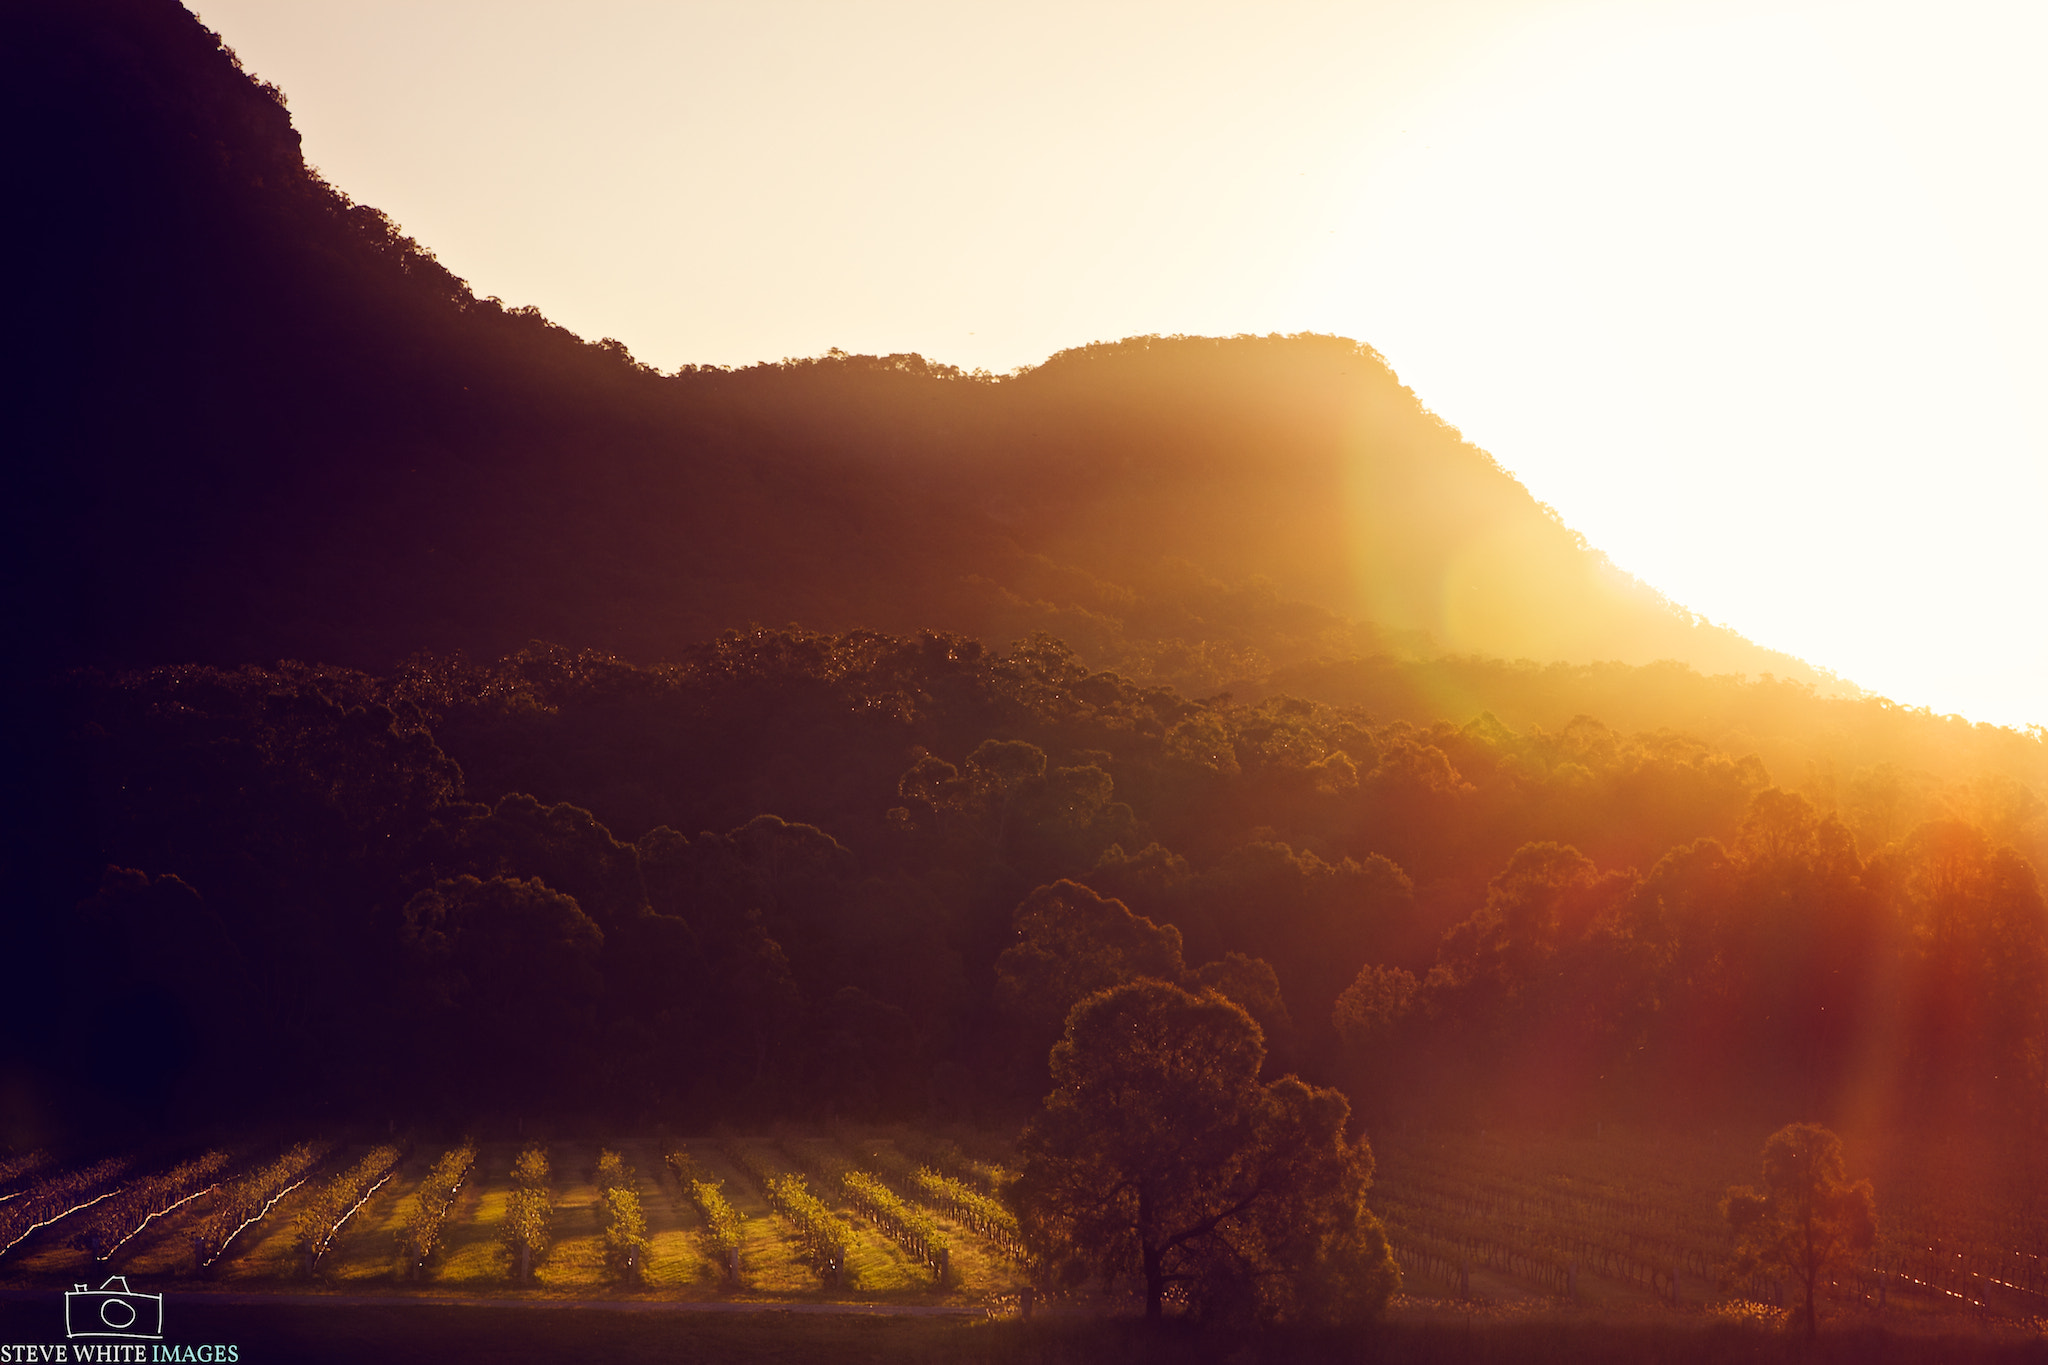 Photograph Sunset over Vineyard by Steve White on 500px